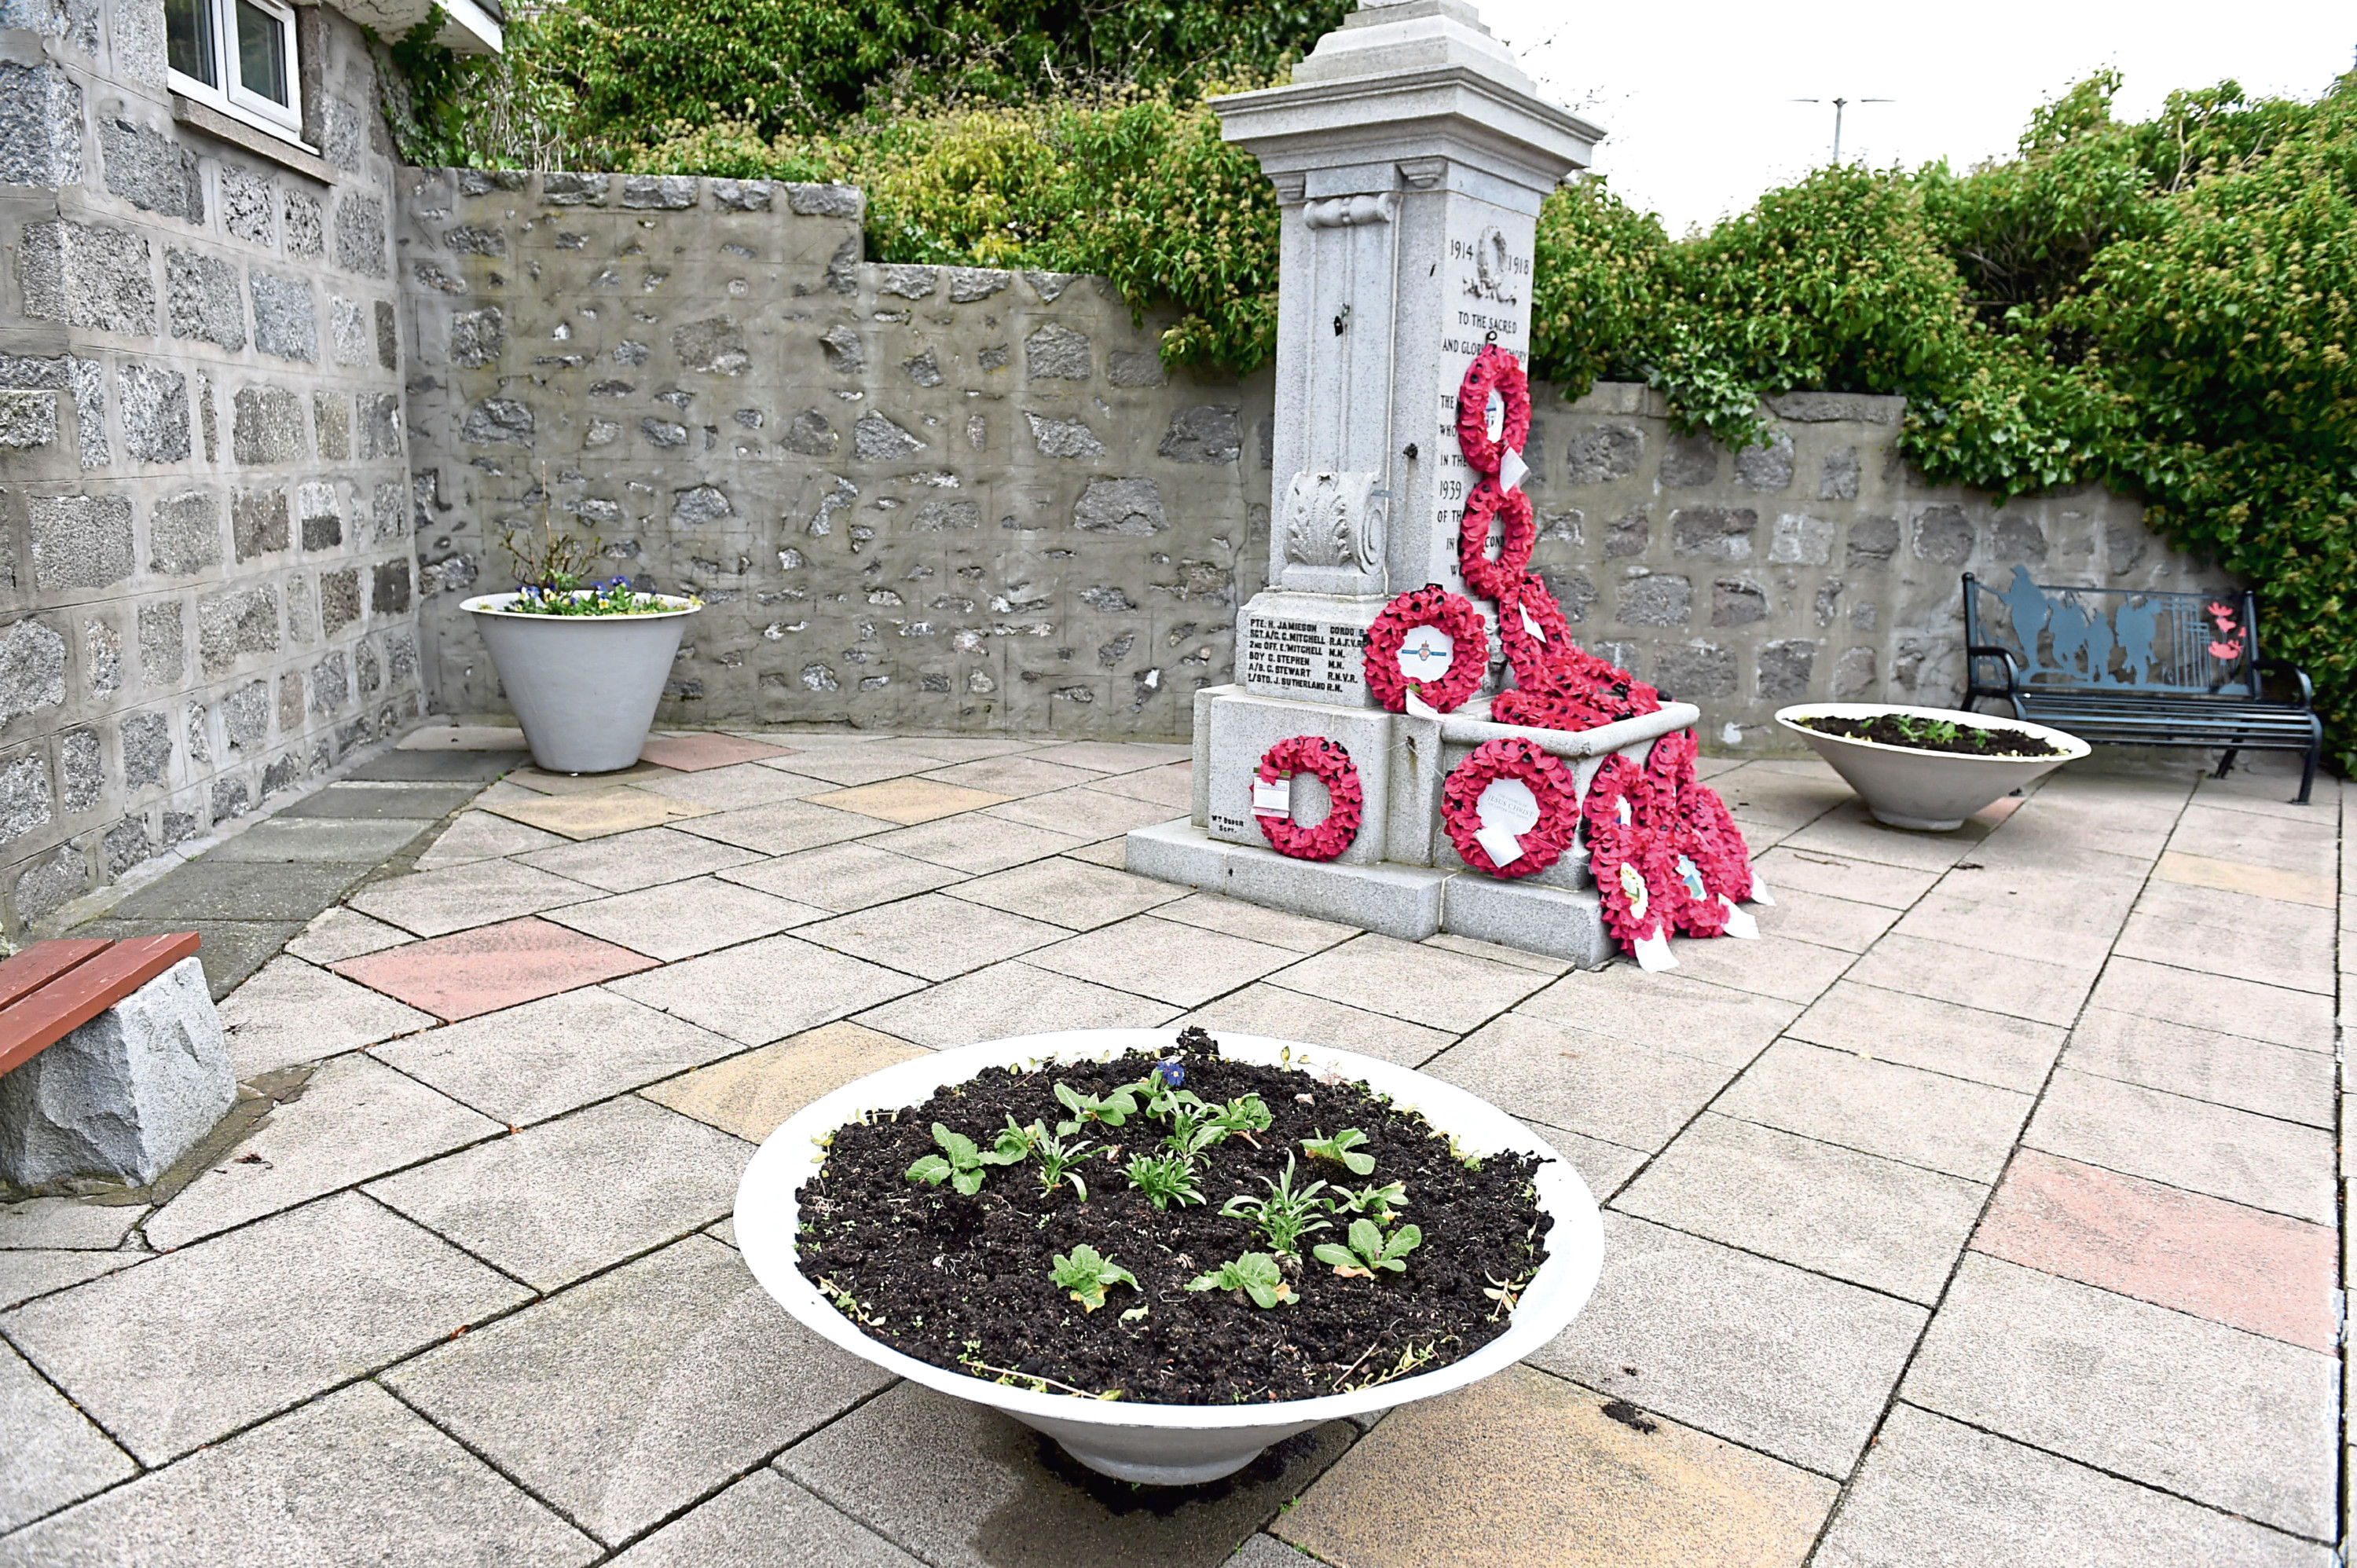 Residents have spoken of their shock after flowers were removed from planters at Bridge of Don memorial